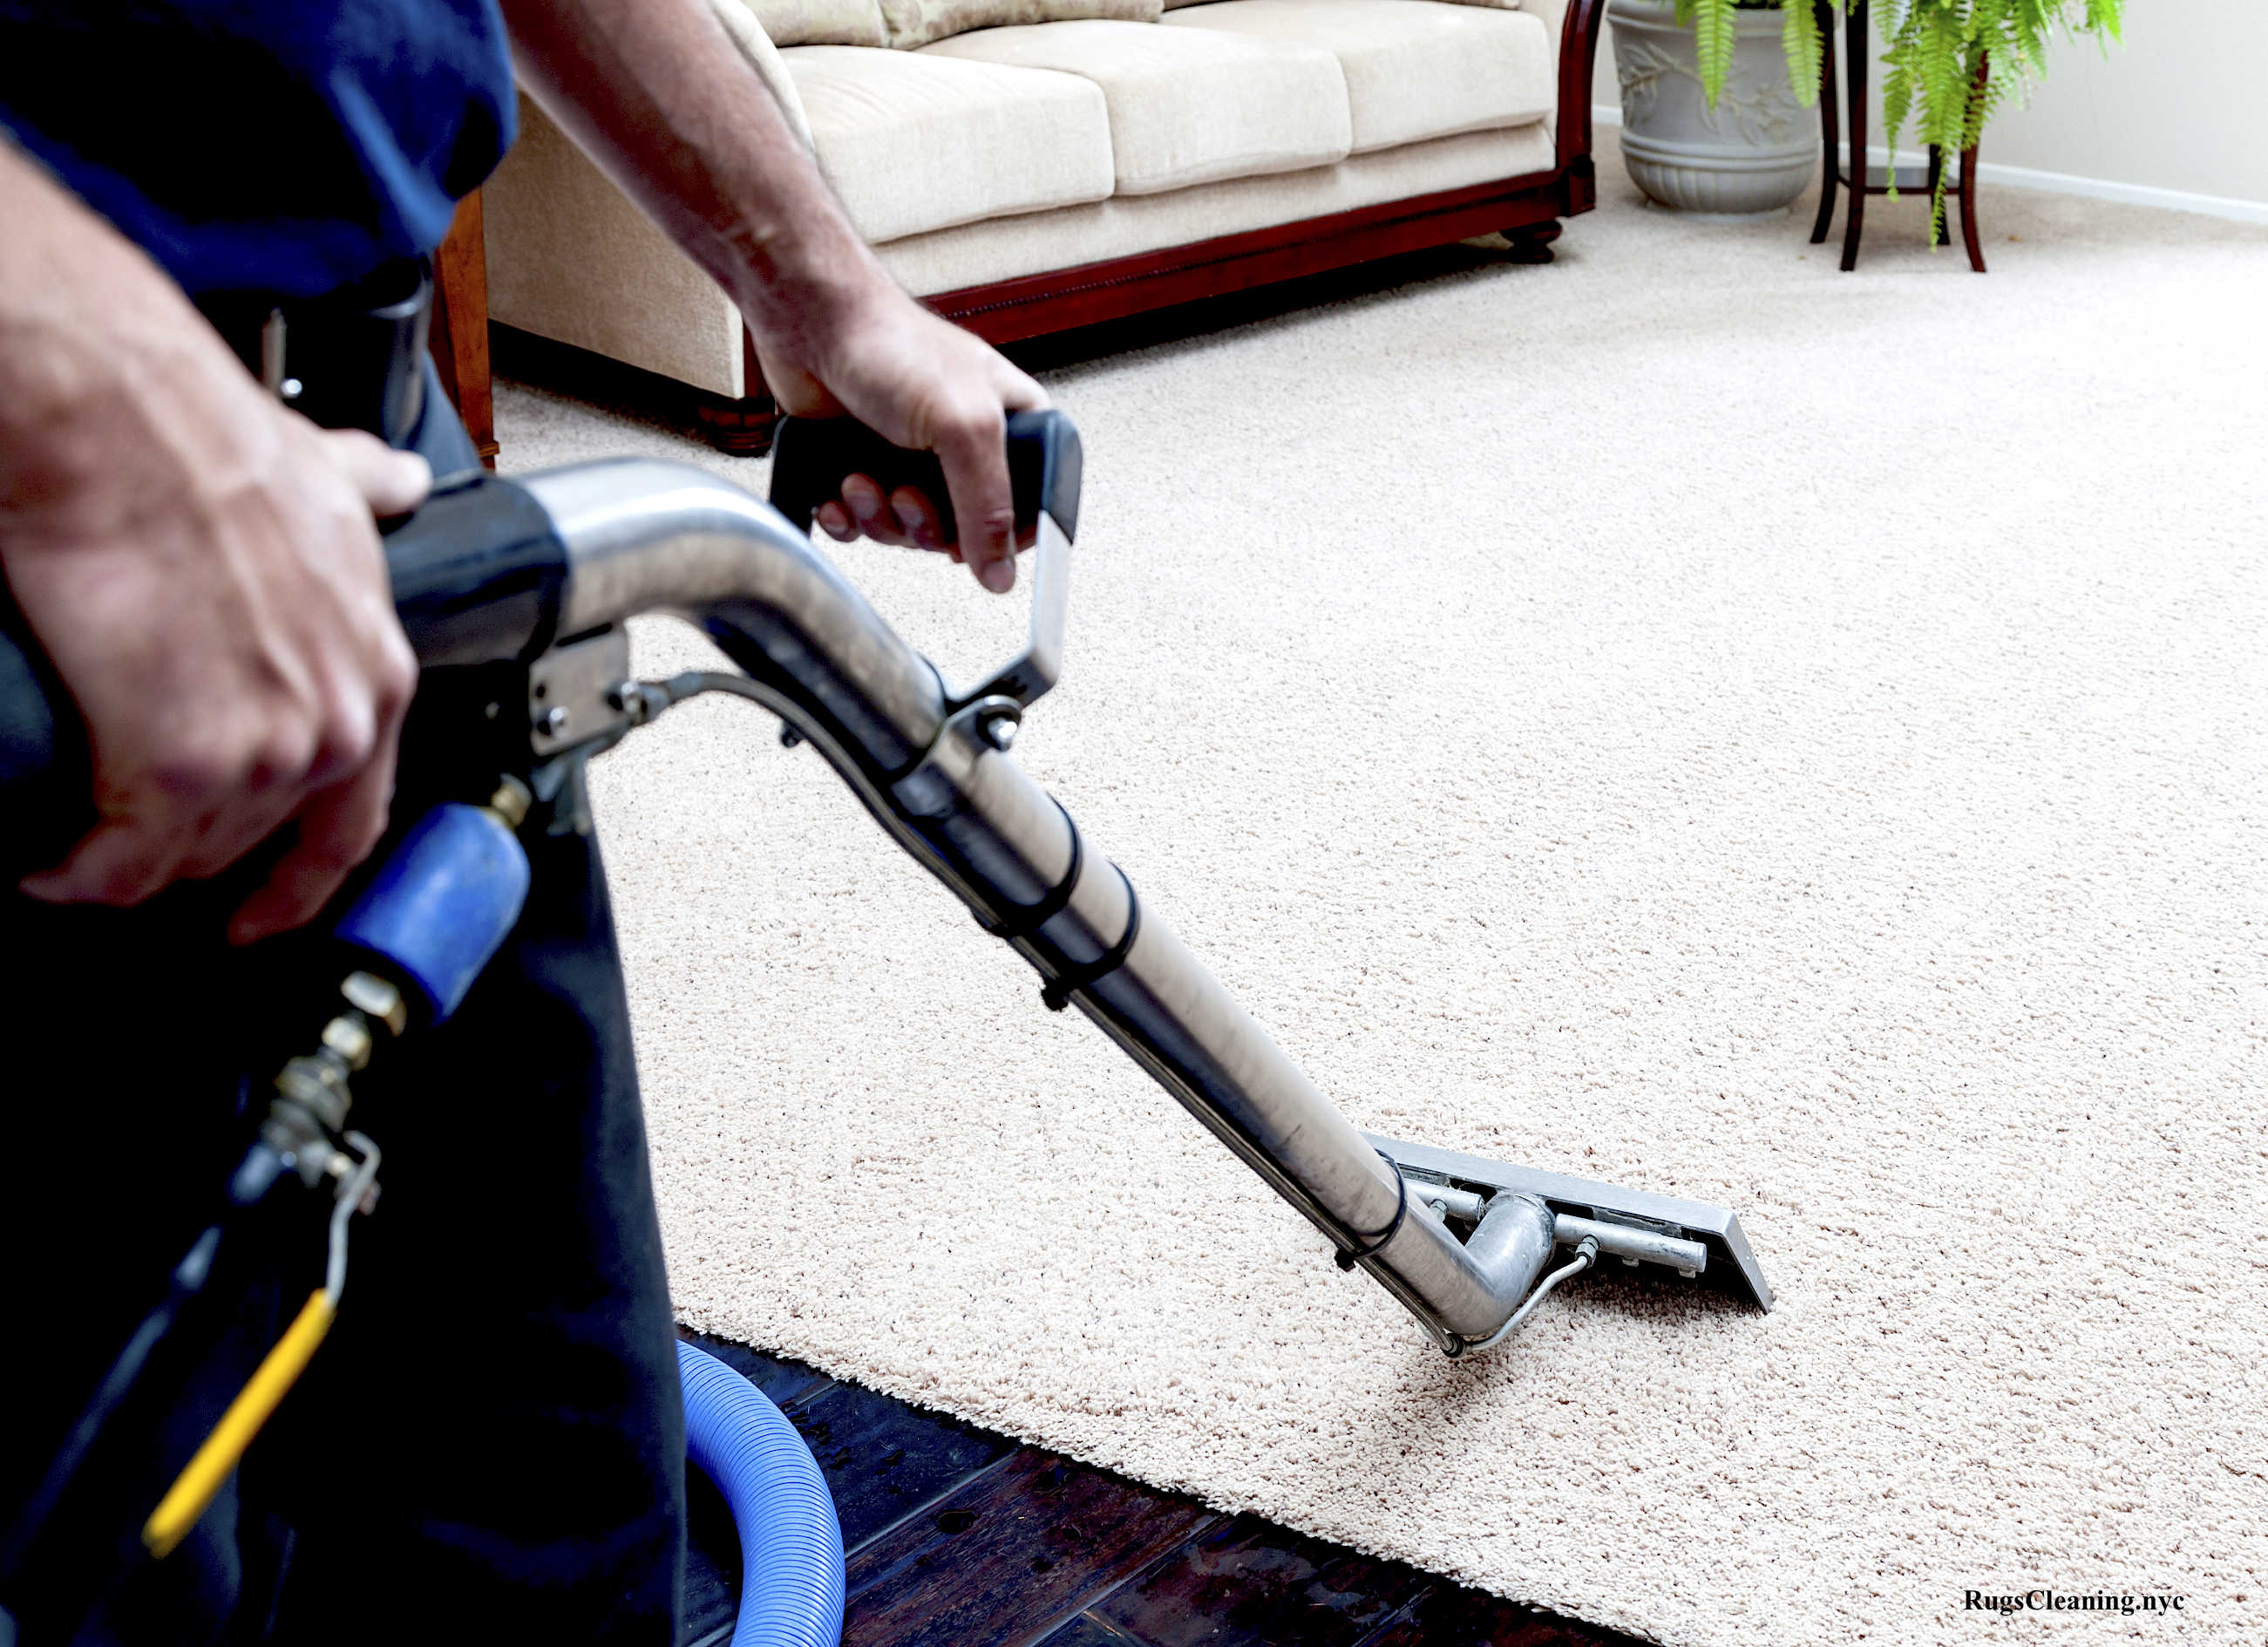 Commercial Carpet Cleaning NYC by RugsCleaning.NYC ®